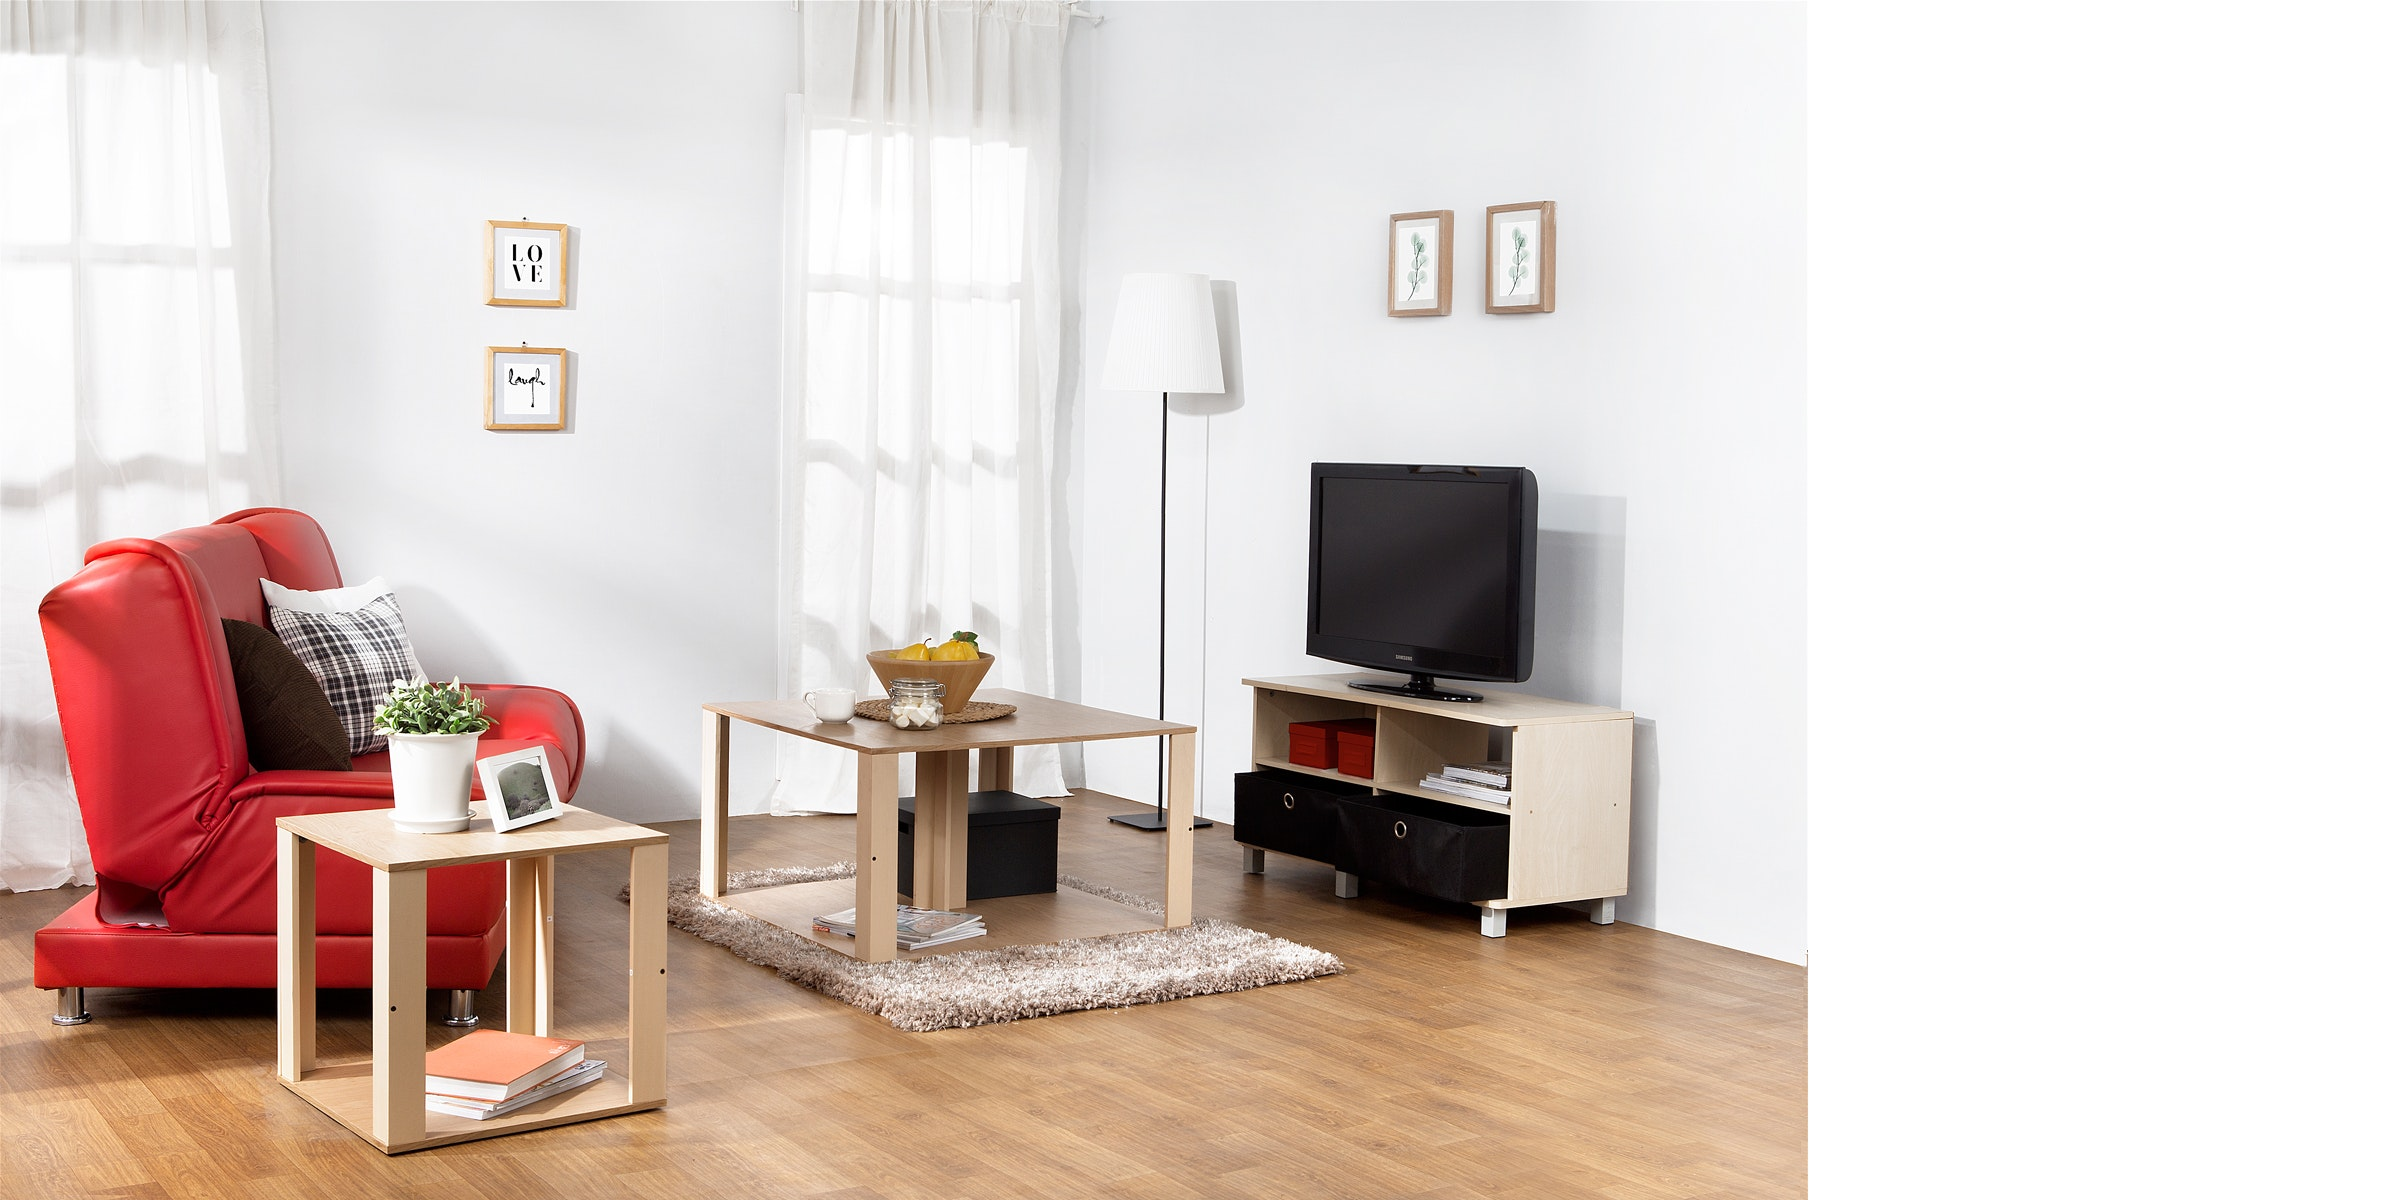 Funika Set Ruang Keluarga Seri Modern (Coffee Table + Meja TV + Side Table)